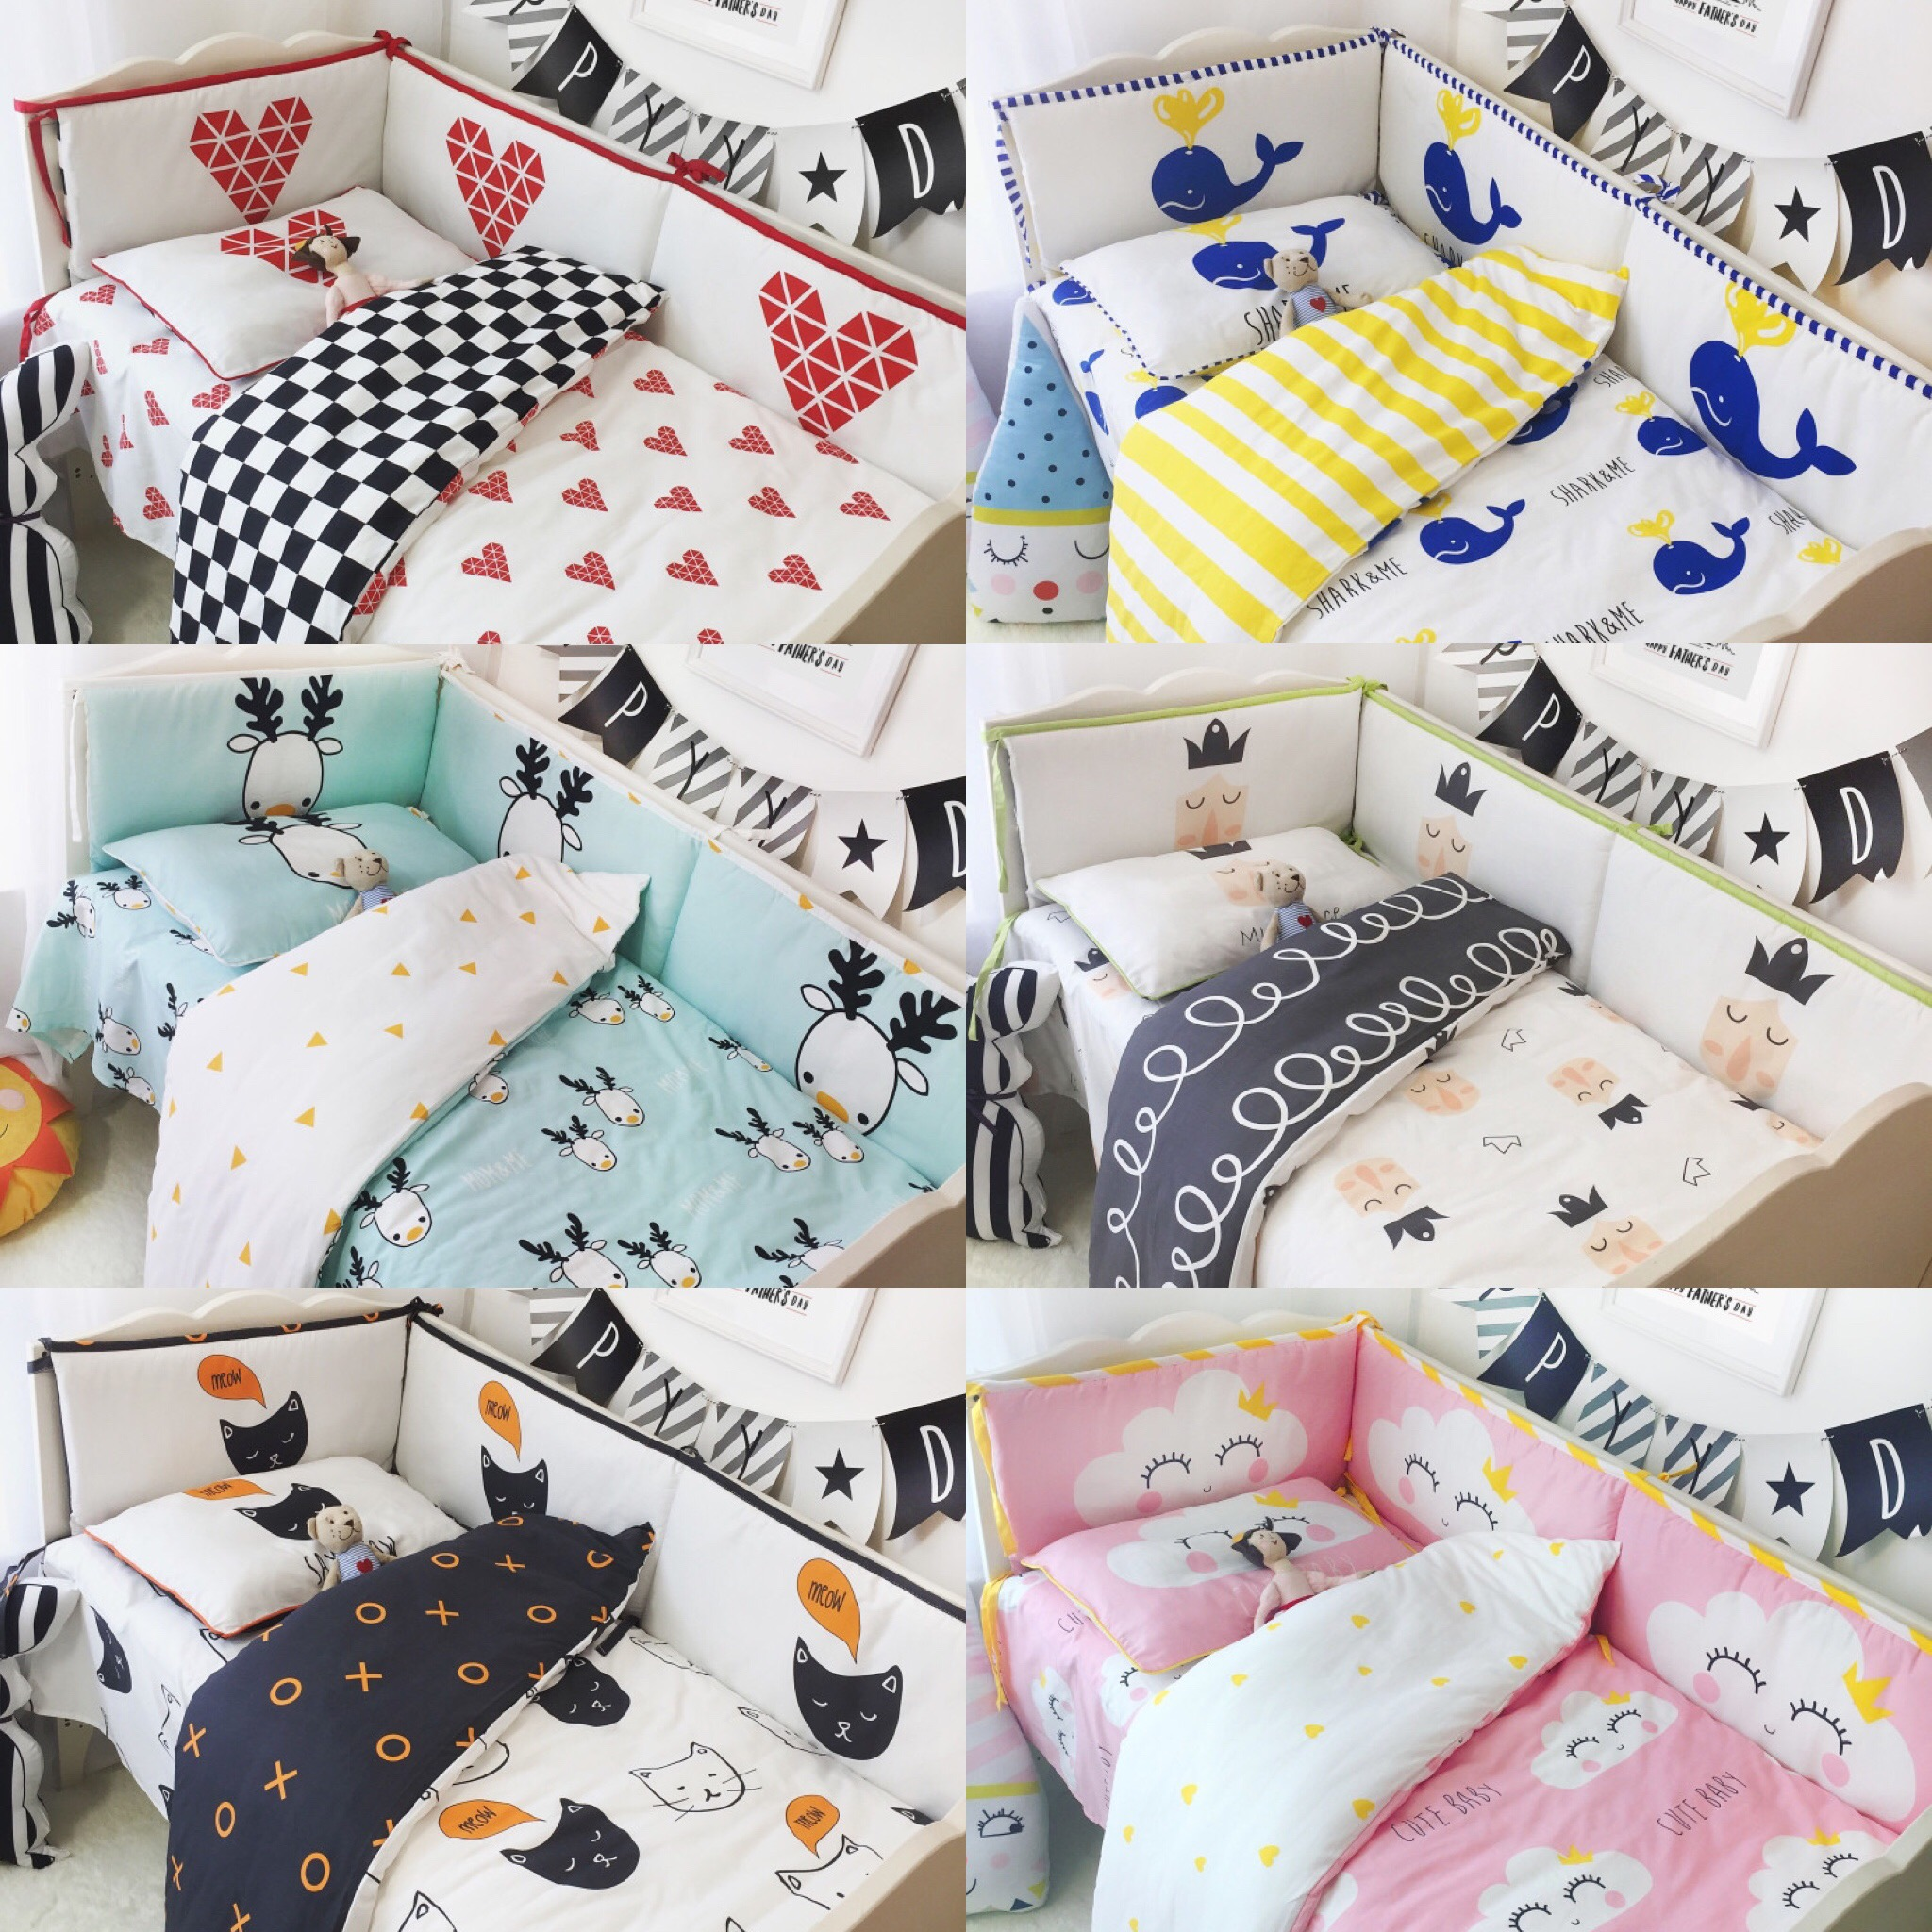 7pcs / set Ins baby bedding cotton baby bedding cot set Bumper Baby Cot Sets Bed Around Protector Pink Clouds Deer whale crown лежаки для животных happy house колыбель luxsury living темно голубой 41 38 36 см для домашних животных